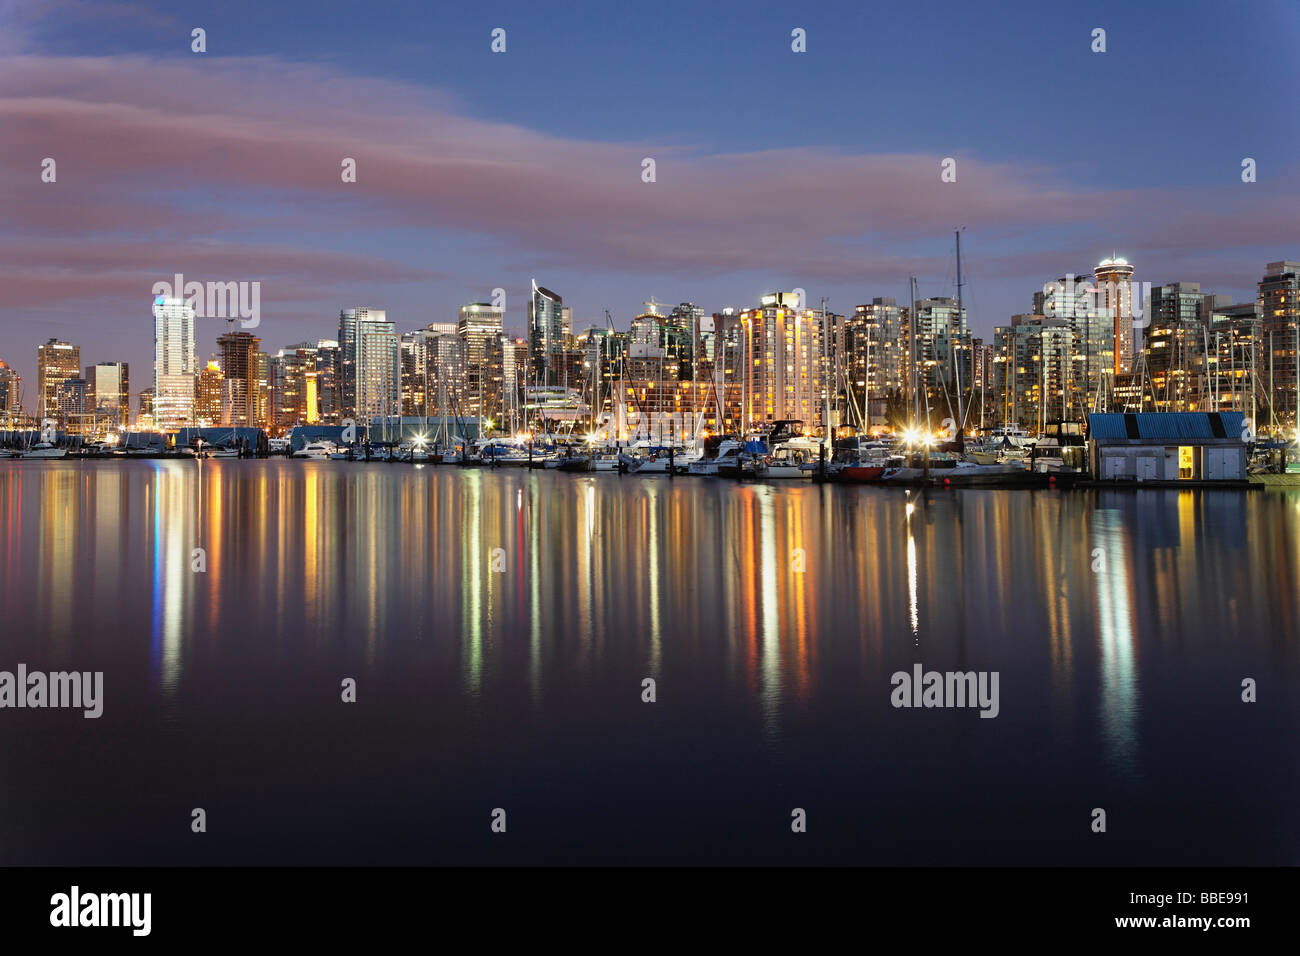 Vancouver skyline and boat harbour reflect in the waters of Coal Harbour - Stock Image